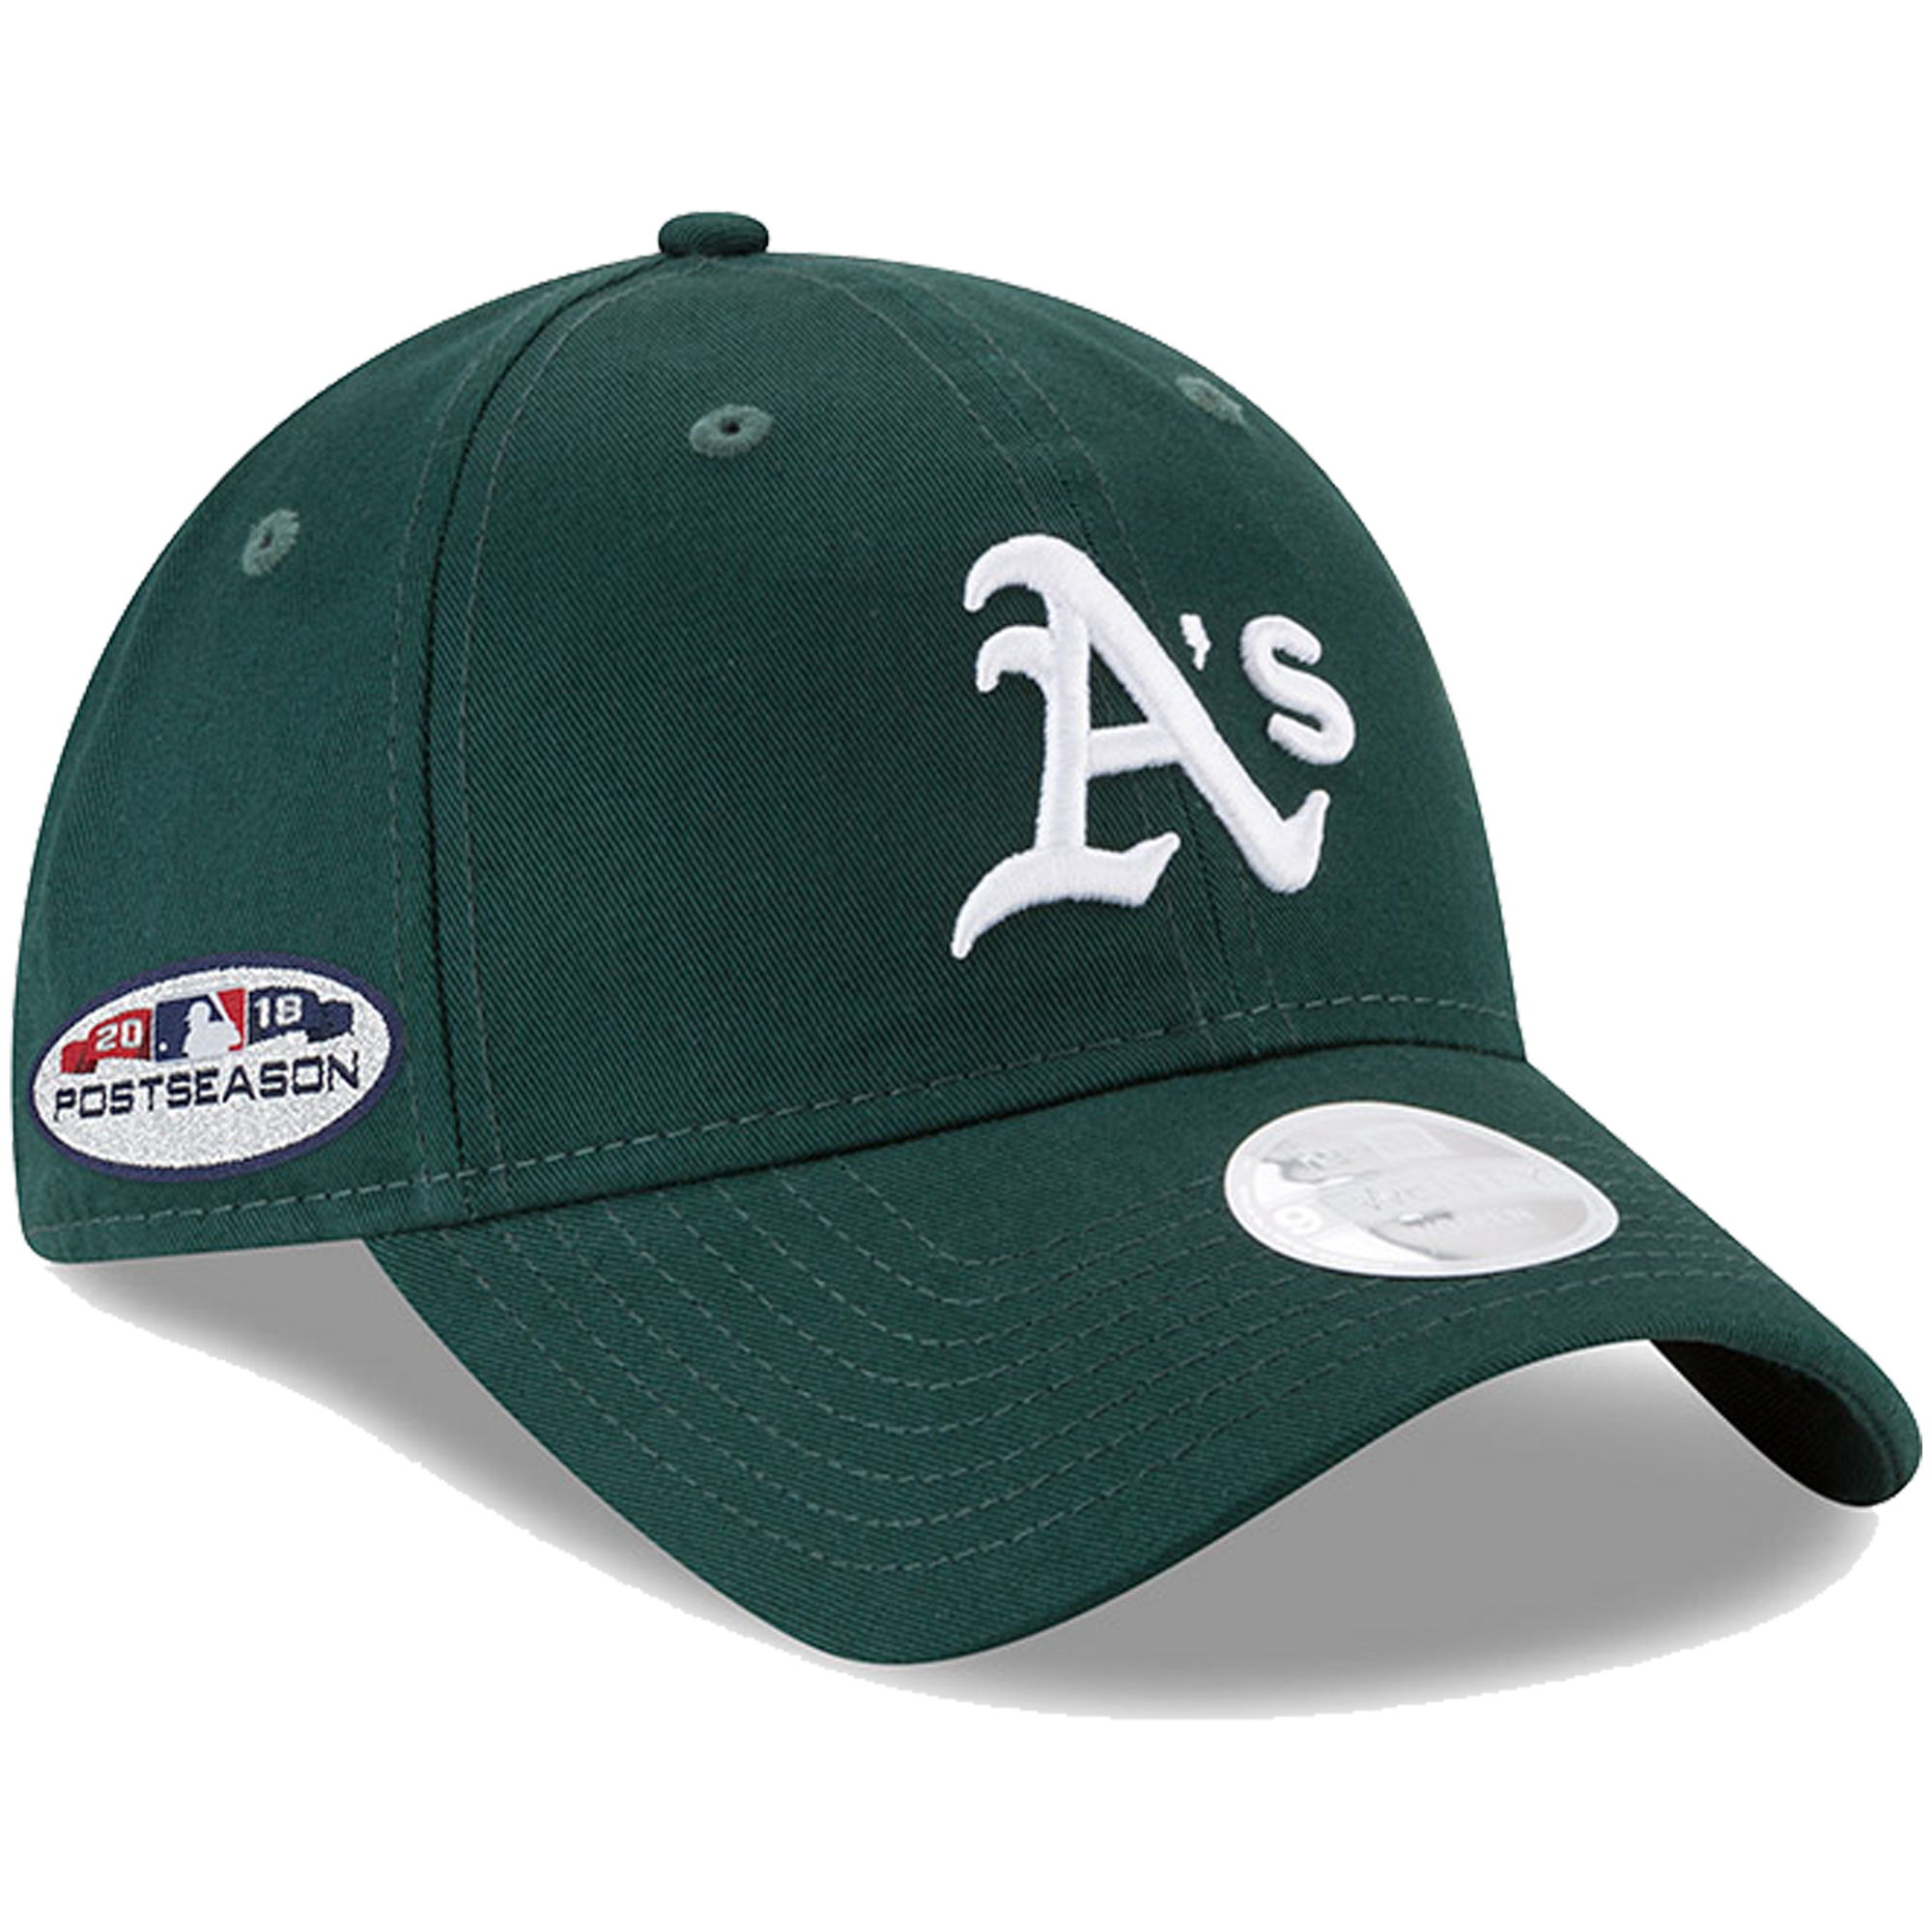 Oakland Athletics New Era Women's 2018 Postseason Side Patch 9TWENTY Adjustable Hat - Green - OSFA